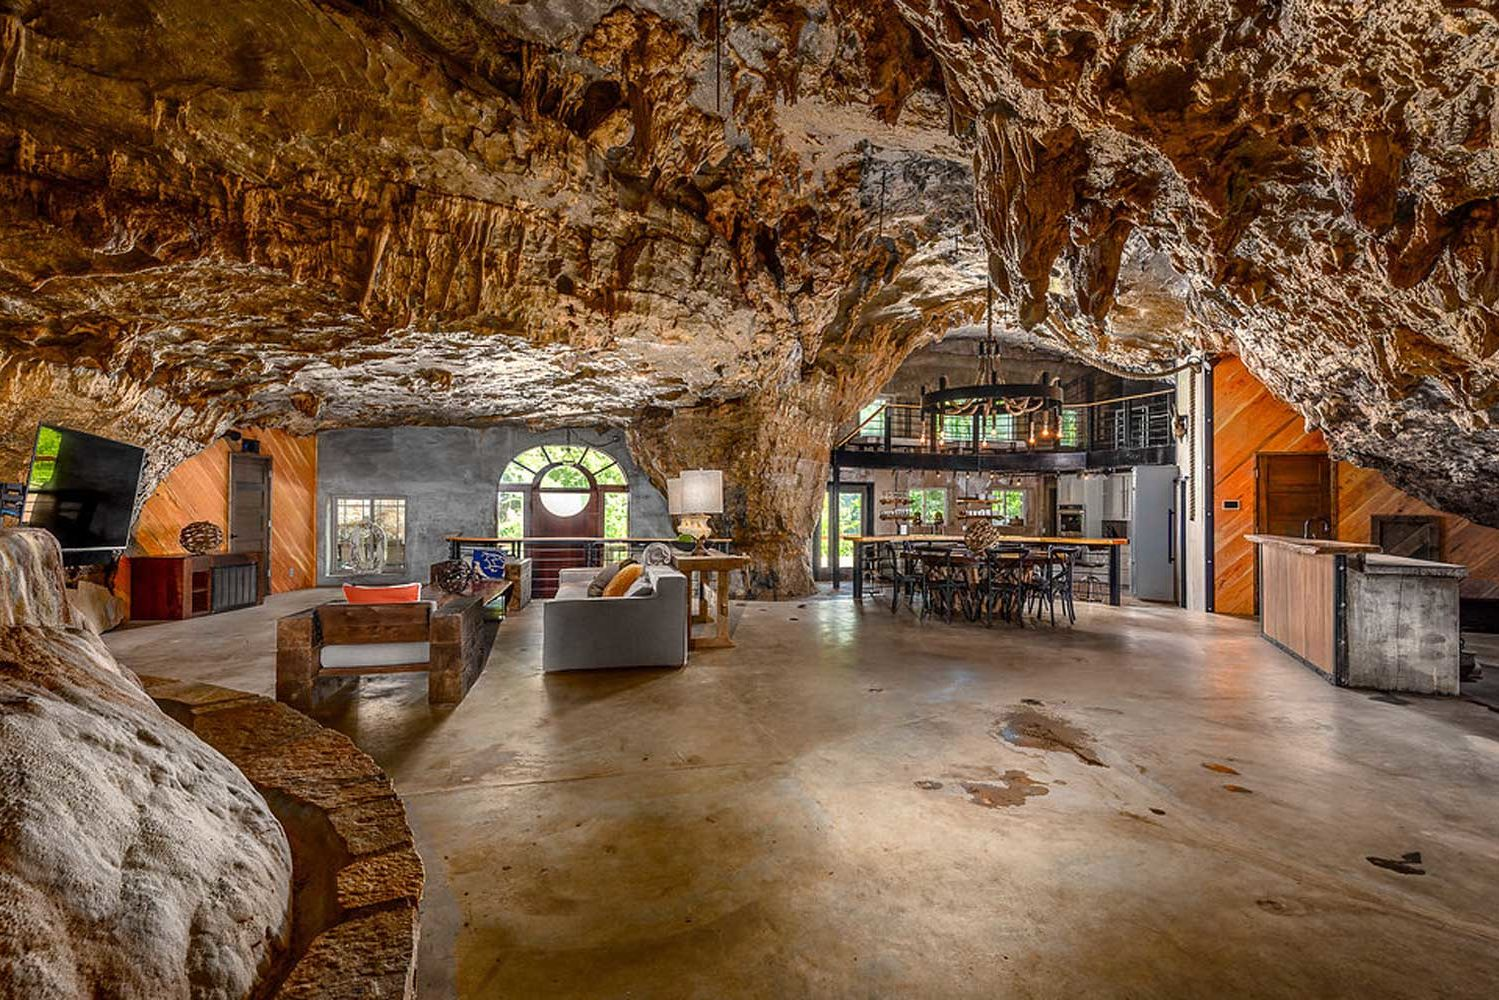 This Luxury Cave House Is Built Into a Mountain — and You Can Rent It for Your Next Vacation (Photos)